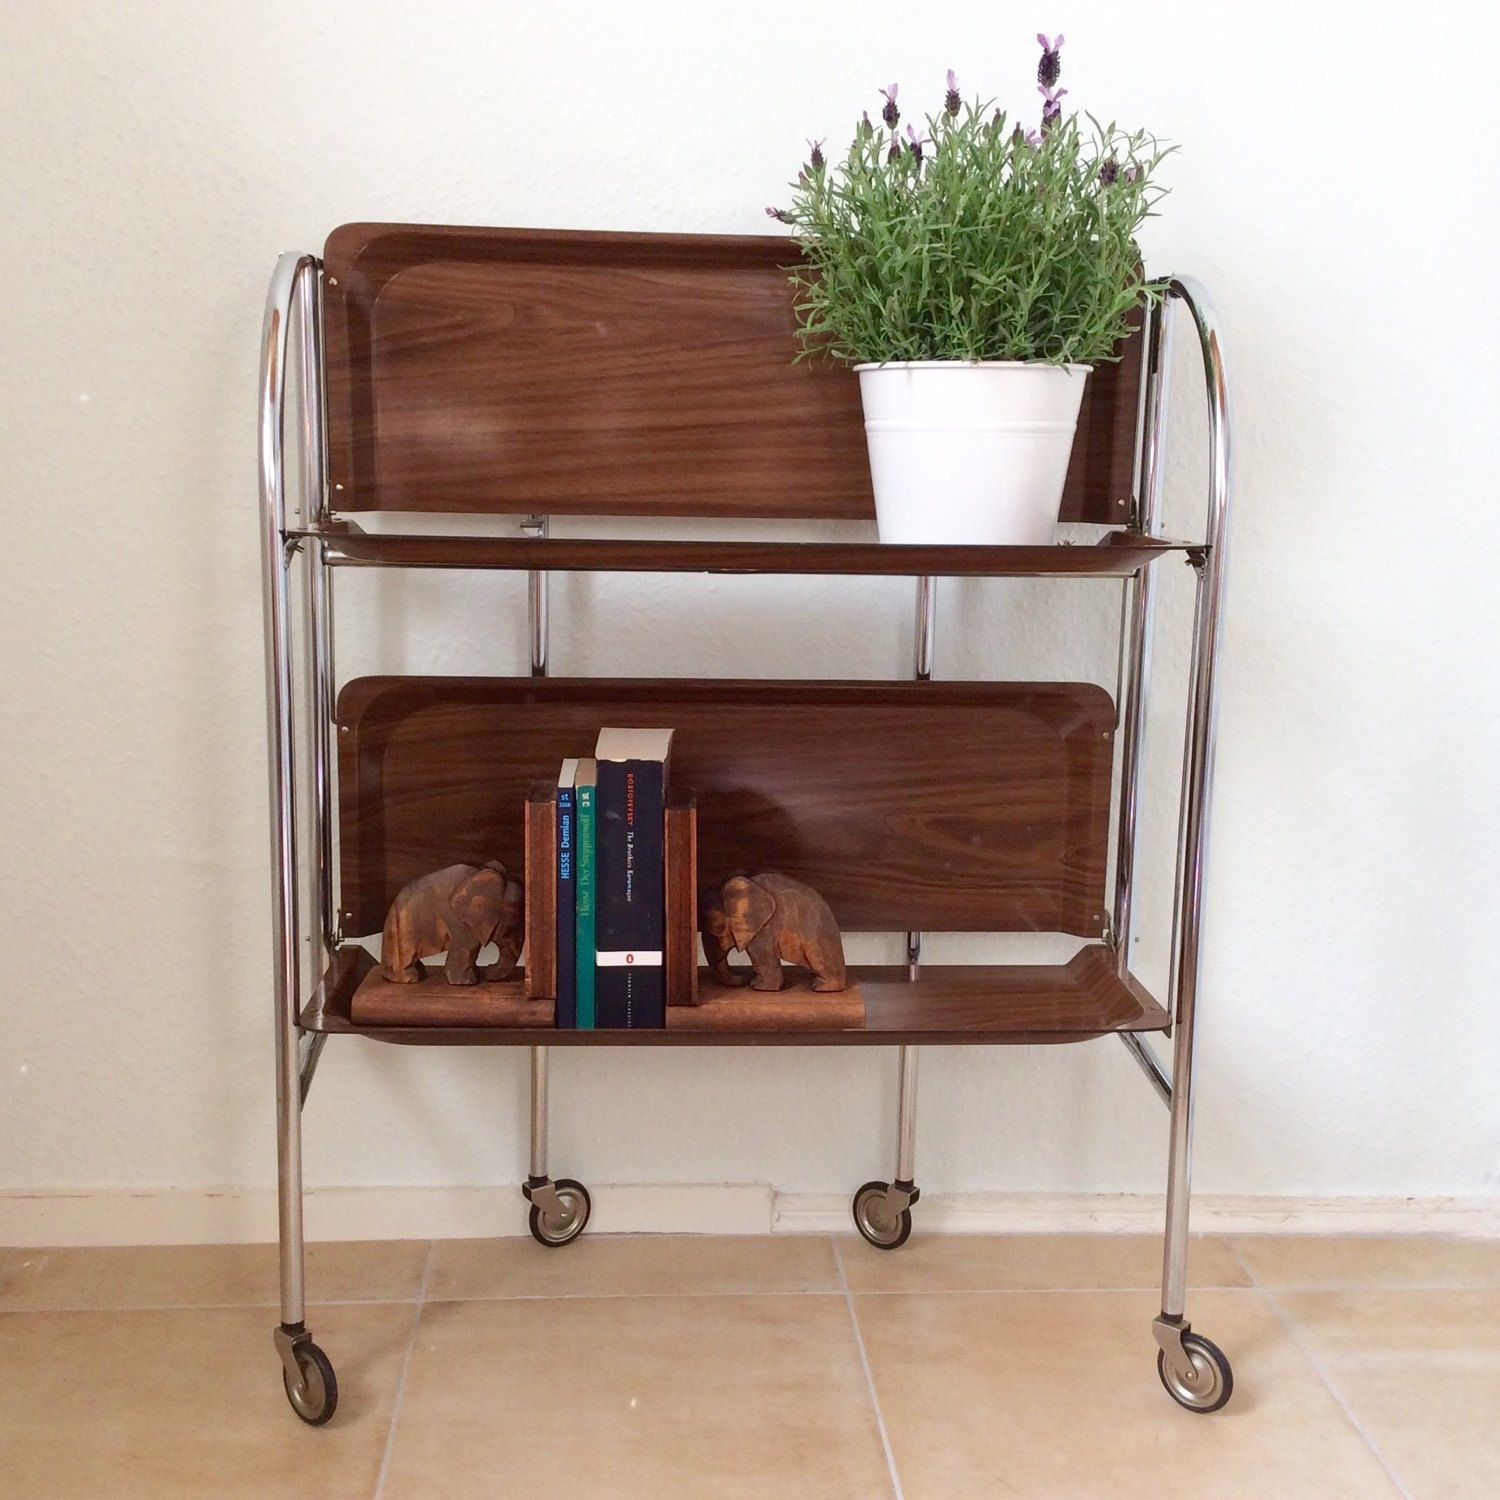 Vintage Serving Cart Trolly Bar Cart Chrome Wood Foldable Wheels Bar Cart  60s Mid Centurywheeled Serving Table Dinett